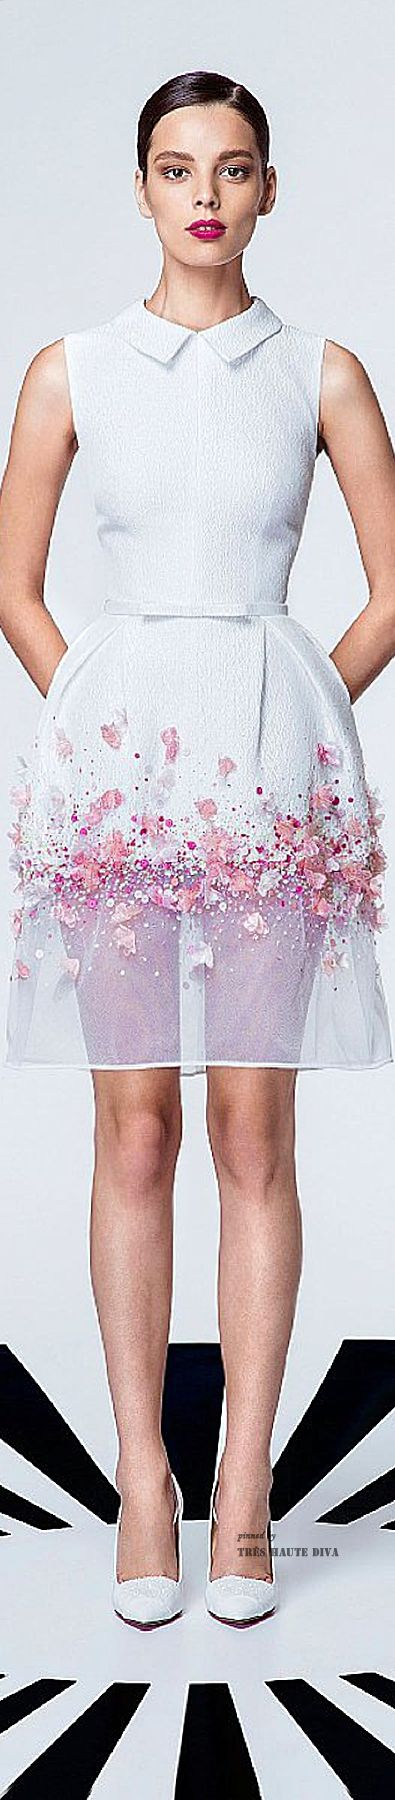 Georges Hobeika Spring - Summer 2015 White and Pink Cocktail Dress - so sweet & adorable. Cocktail dress? Mmm, I'd wear it to a Sunday brunch.Wear some white spanx (bicycle shorts style), and you'll be going back for seconds to chat up that cute guy who smiled at you.